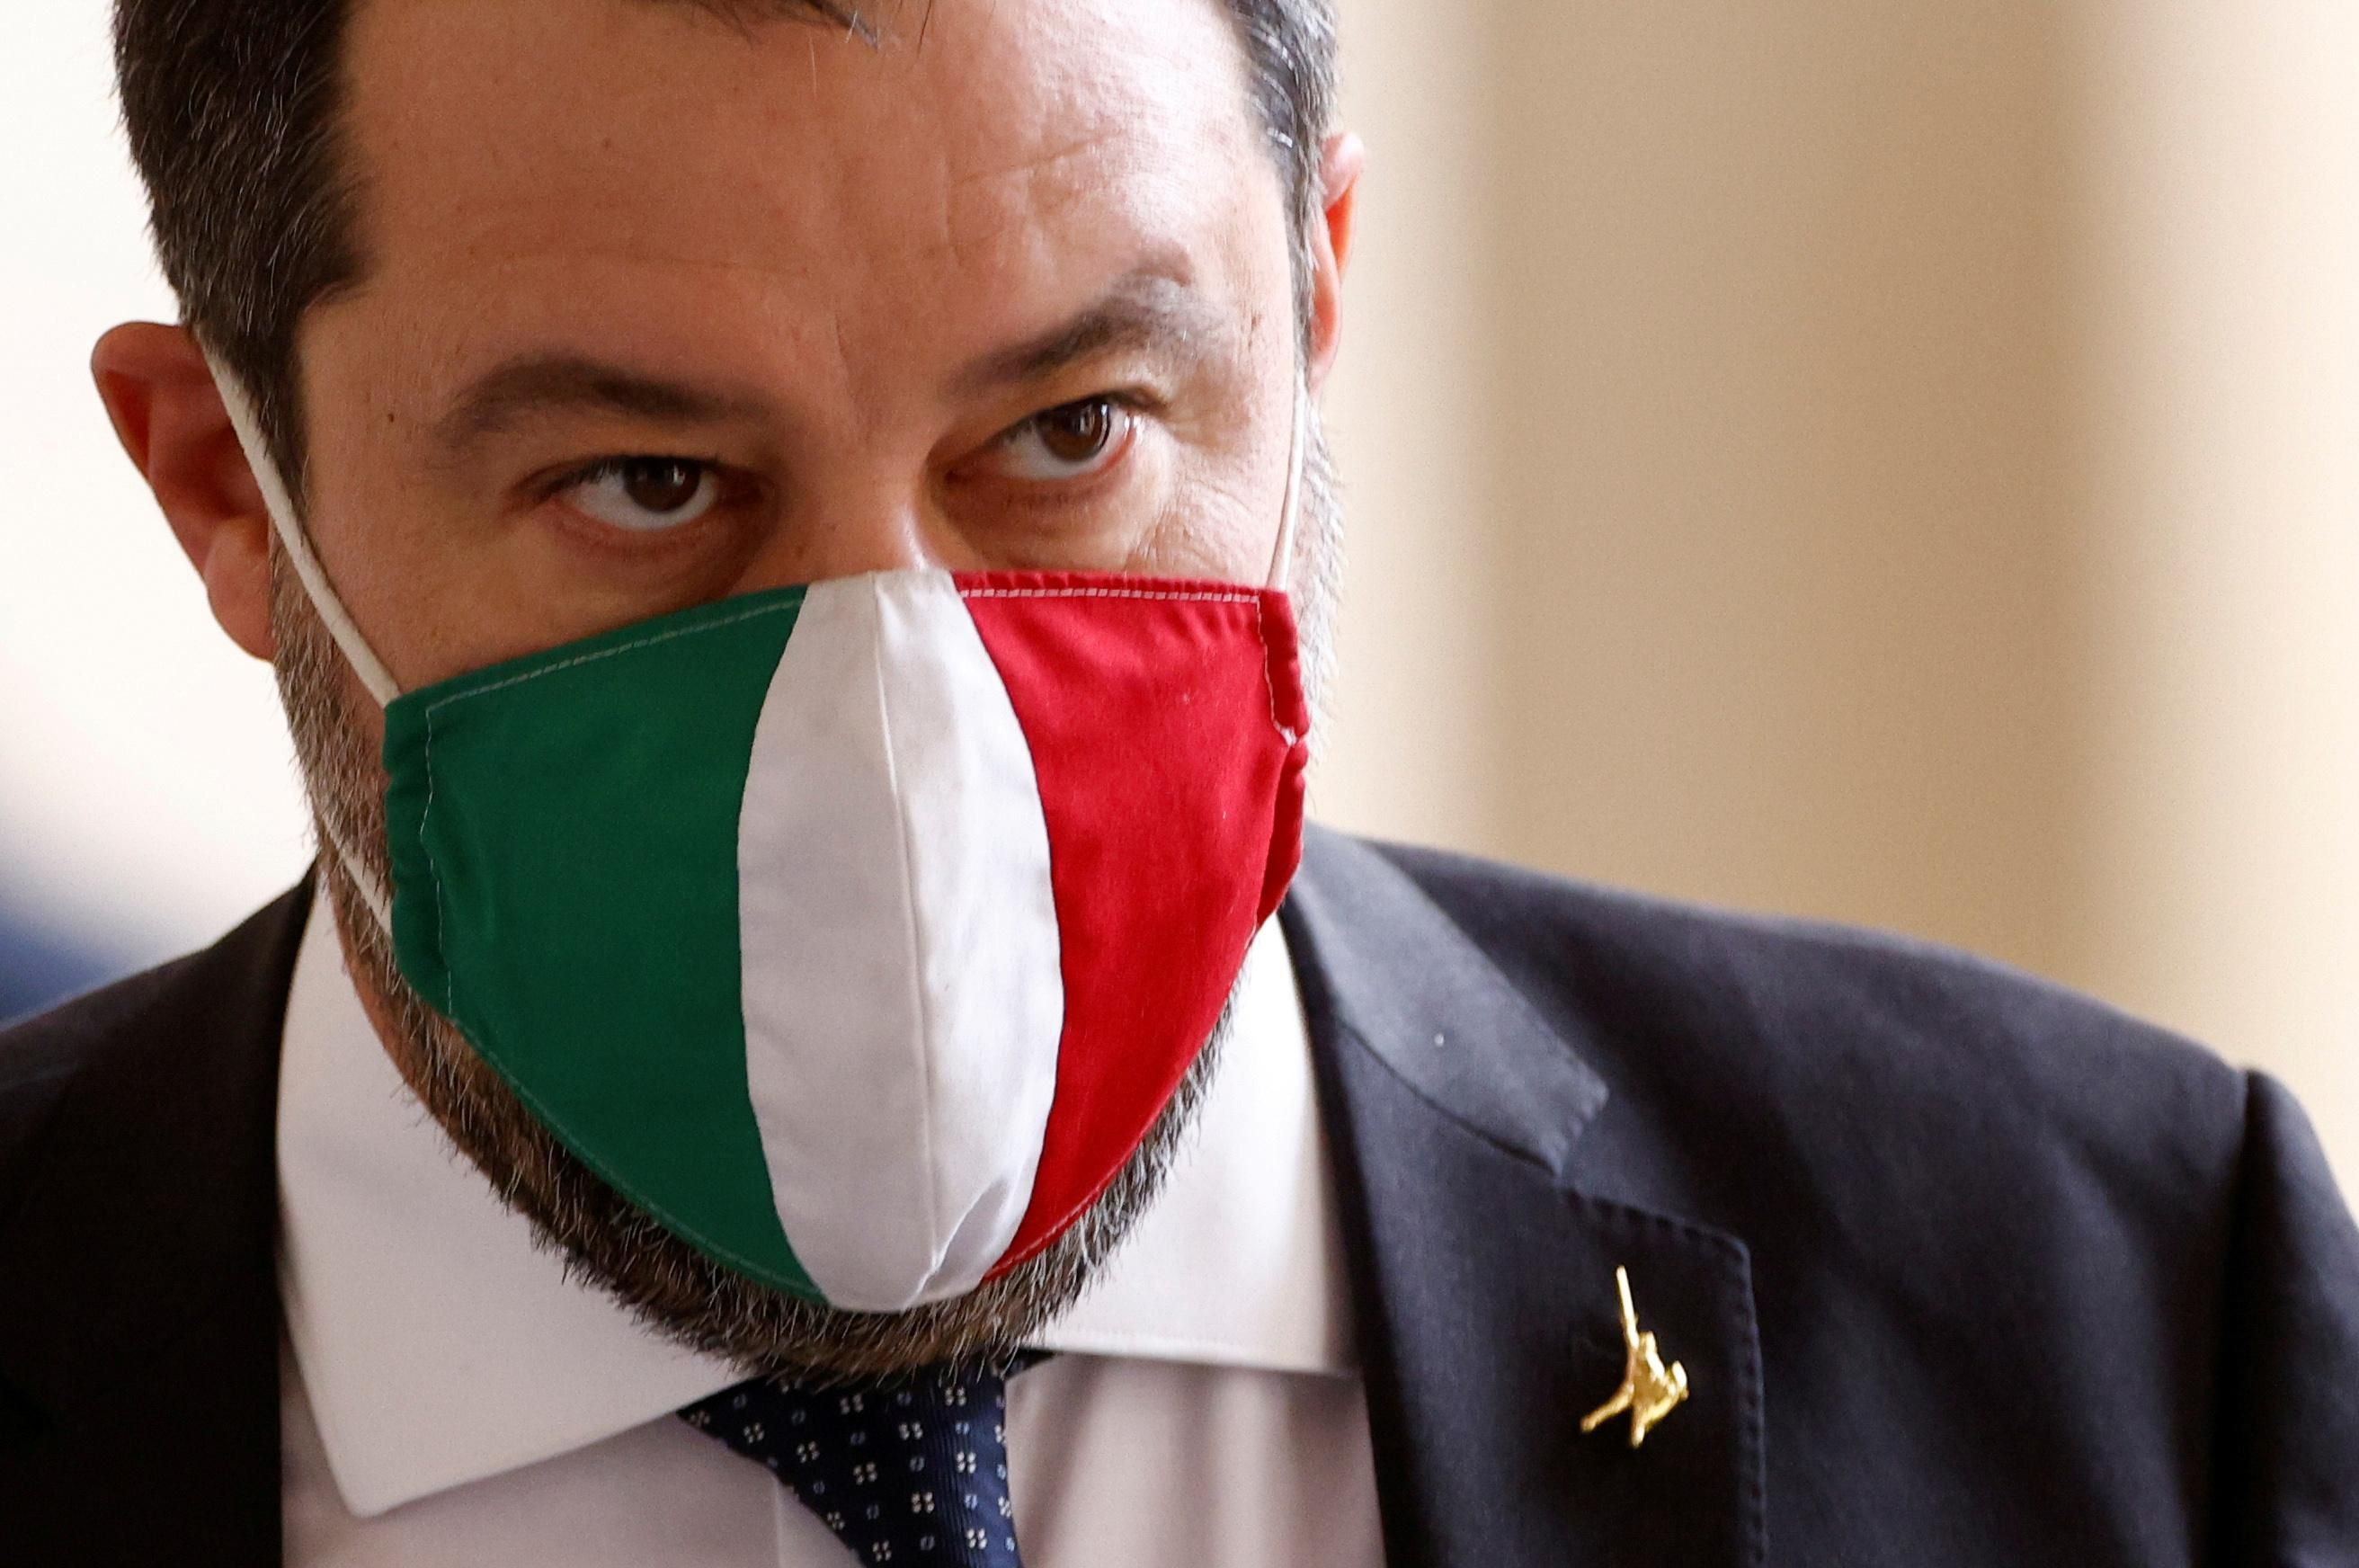 League party leader Matteo Salvini arrives for a meeting with Italian President Sergio Mattarella at the Quirinale Palace in Rome, Italy January 29, 2021.